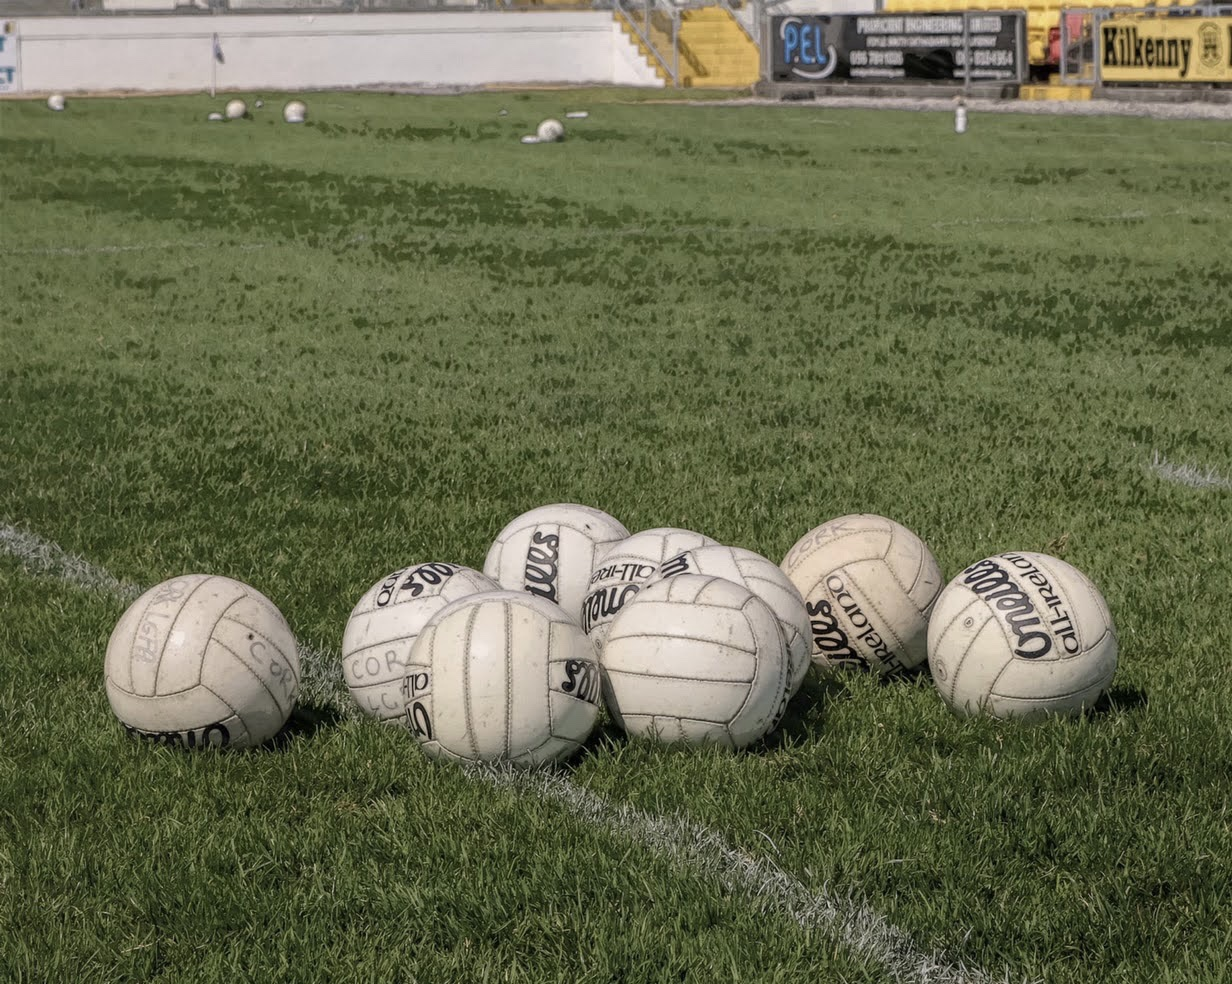 Eight ladies Gaelic footballs on a pitch to signify tonight's Dublin LGFA club championship and adult league games taking place